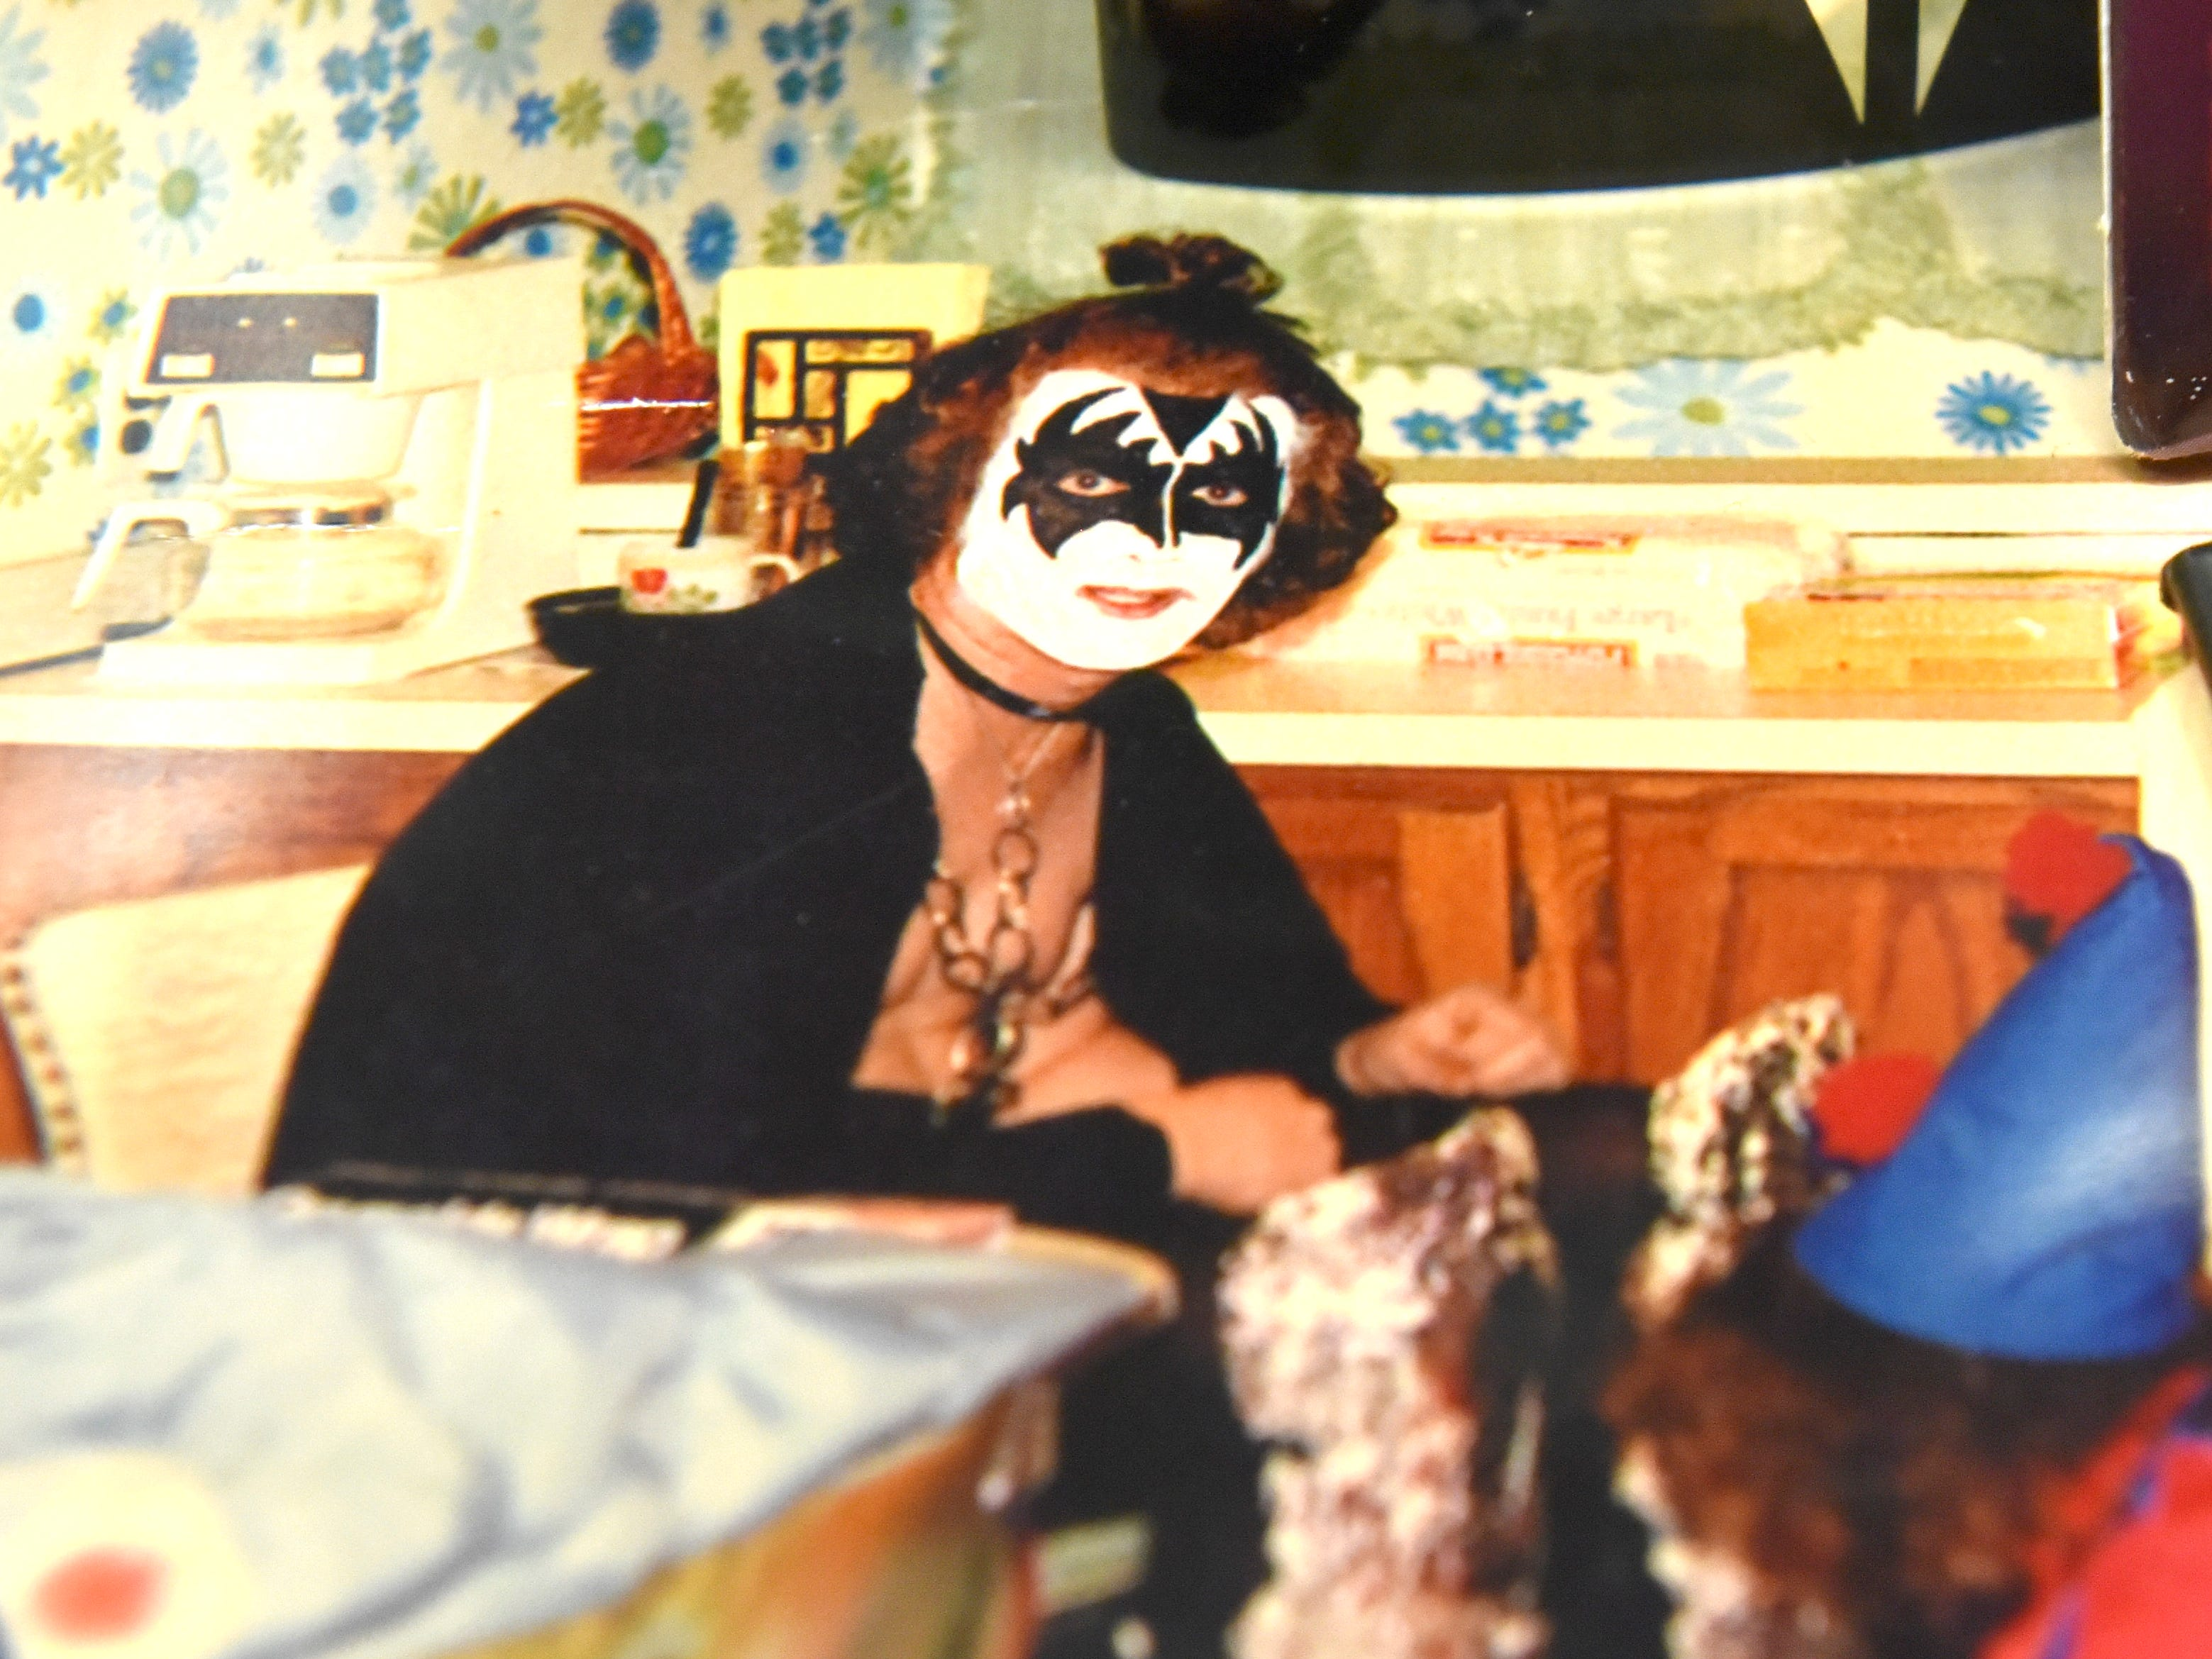 This is an image of Terry Pakulski dressed up like KISS bassist Gene Simmons in 1976.